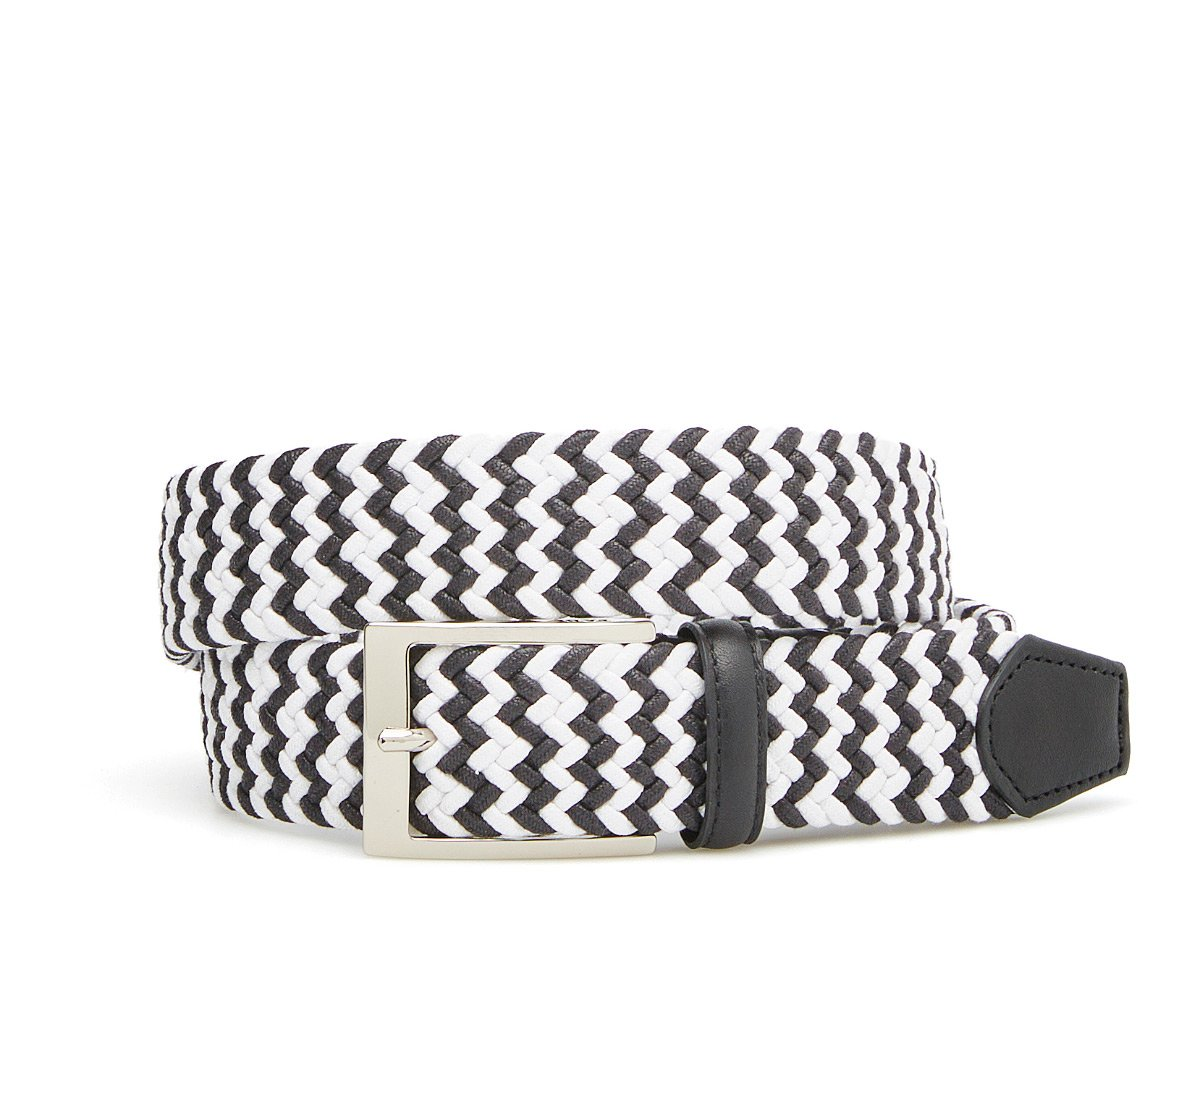 Two-tone cotton belt